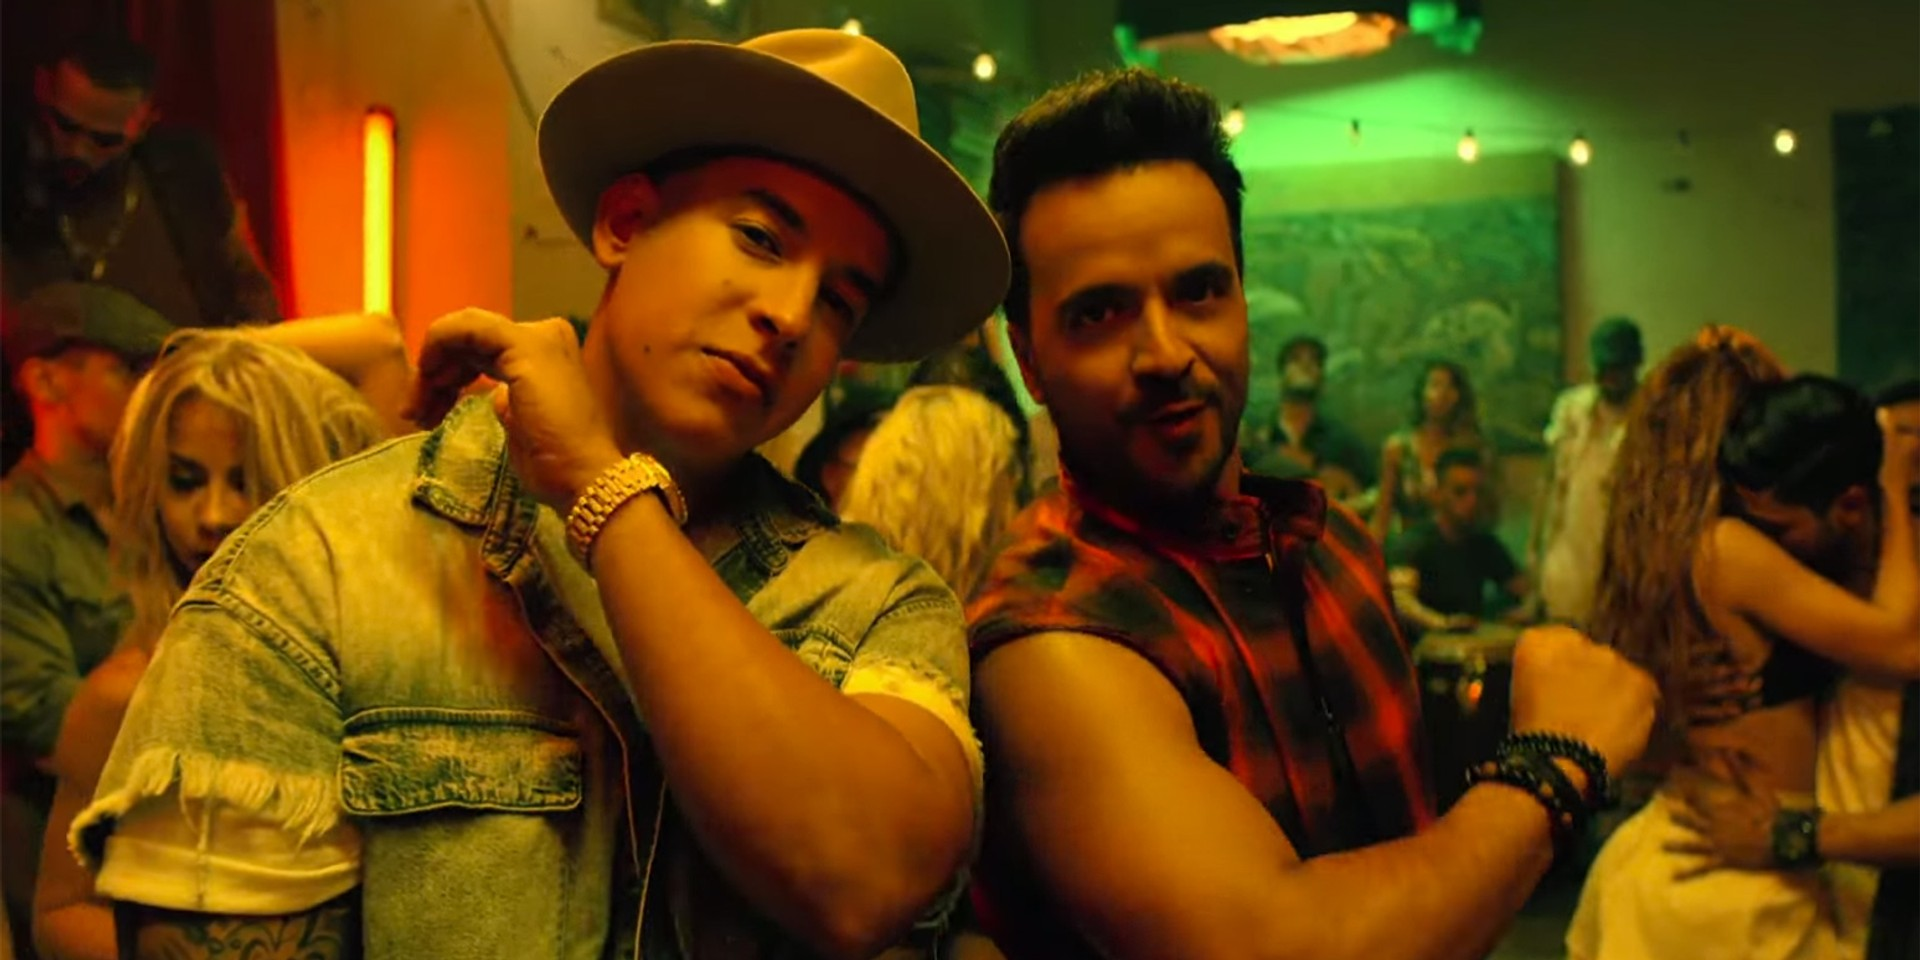 'Despacito' is banned in Malaysia, and the whole world looks on with envy